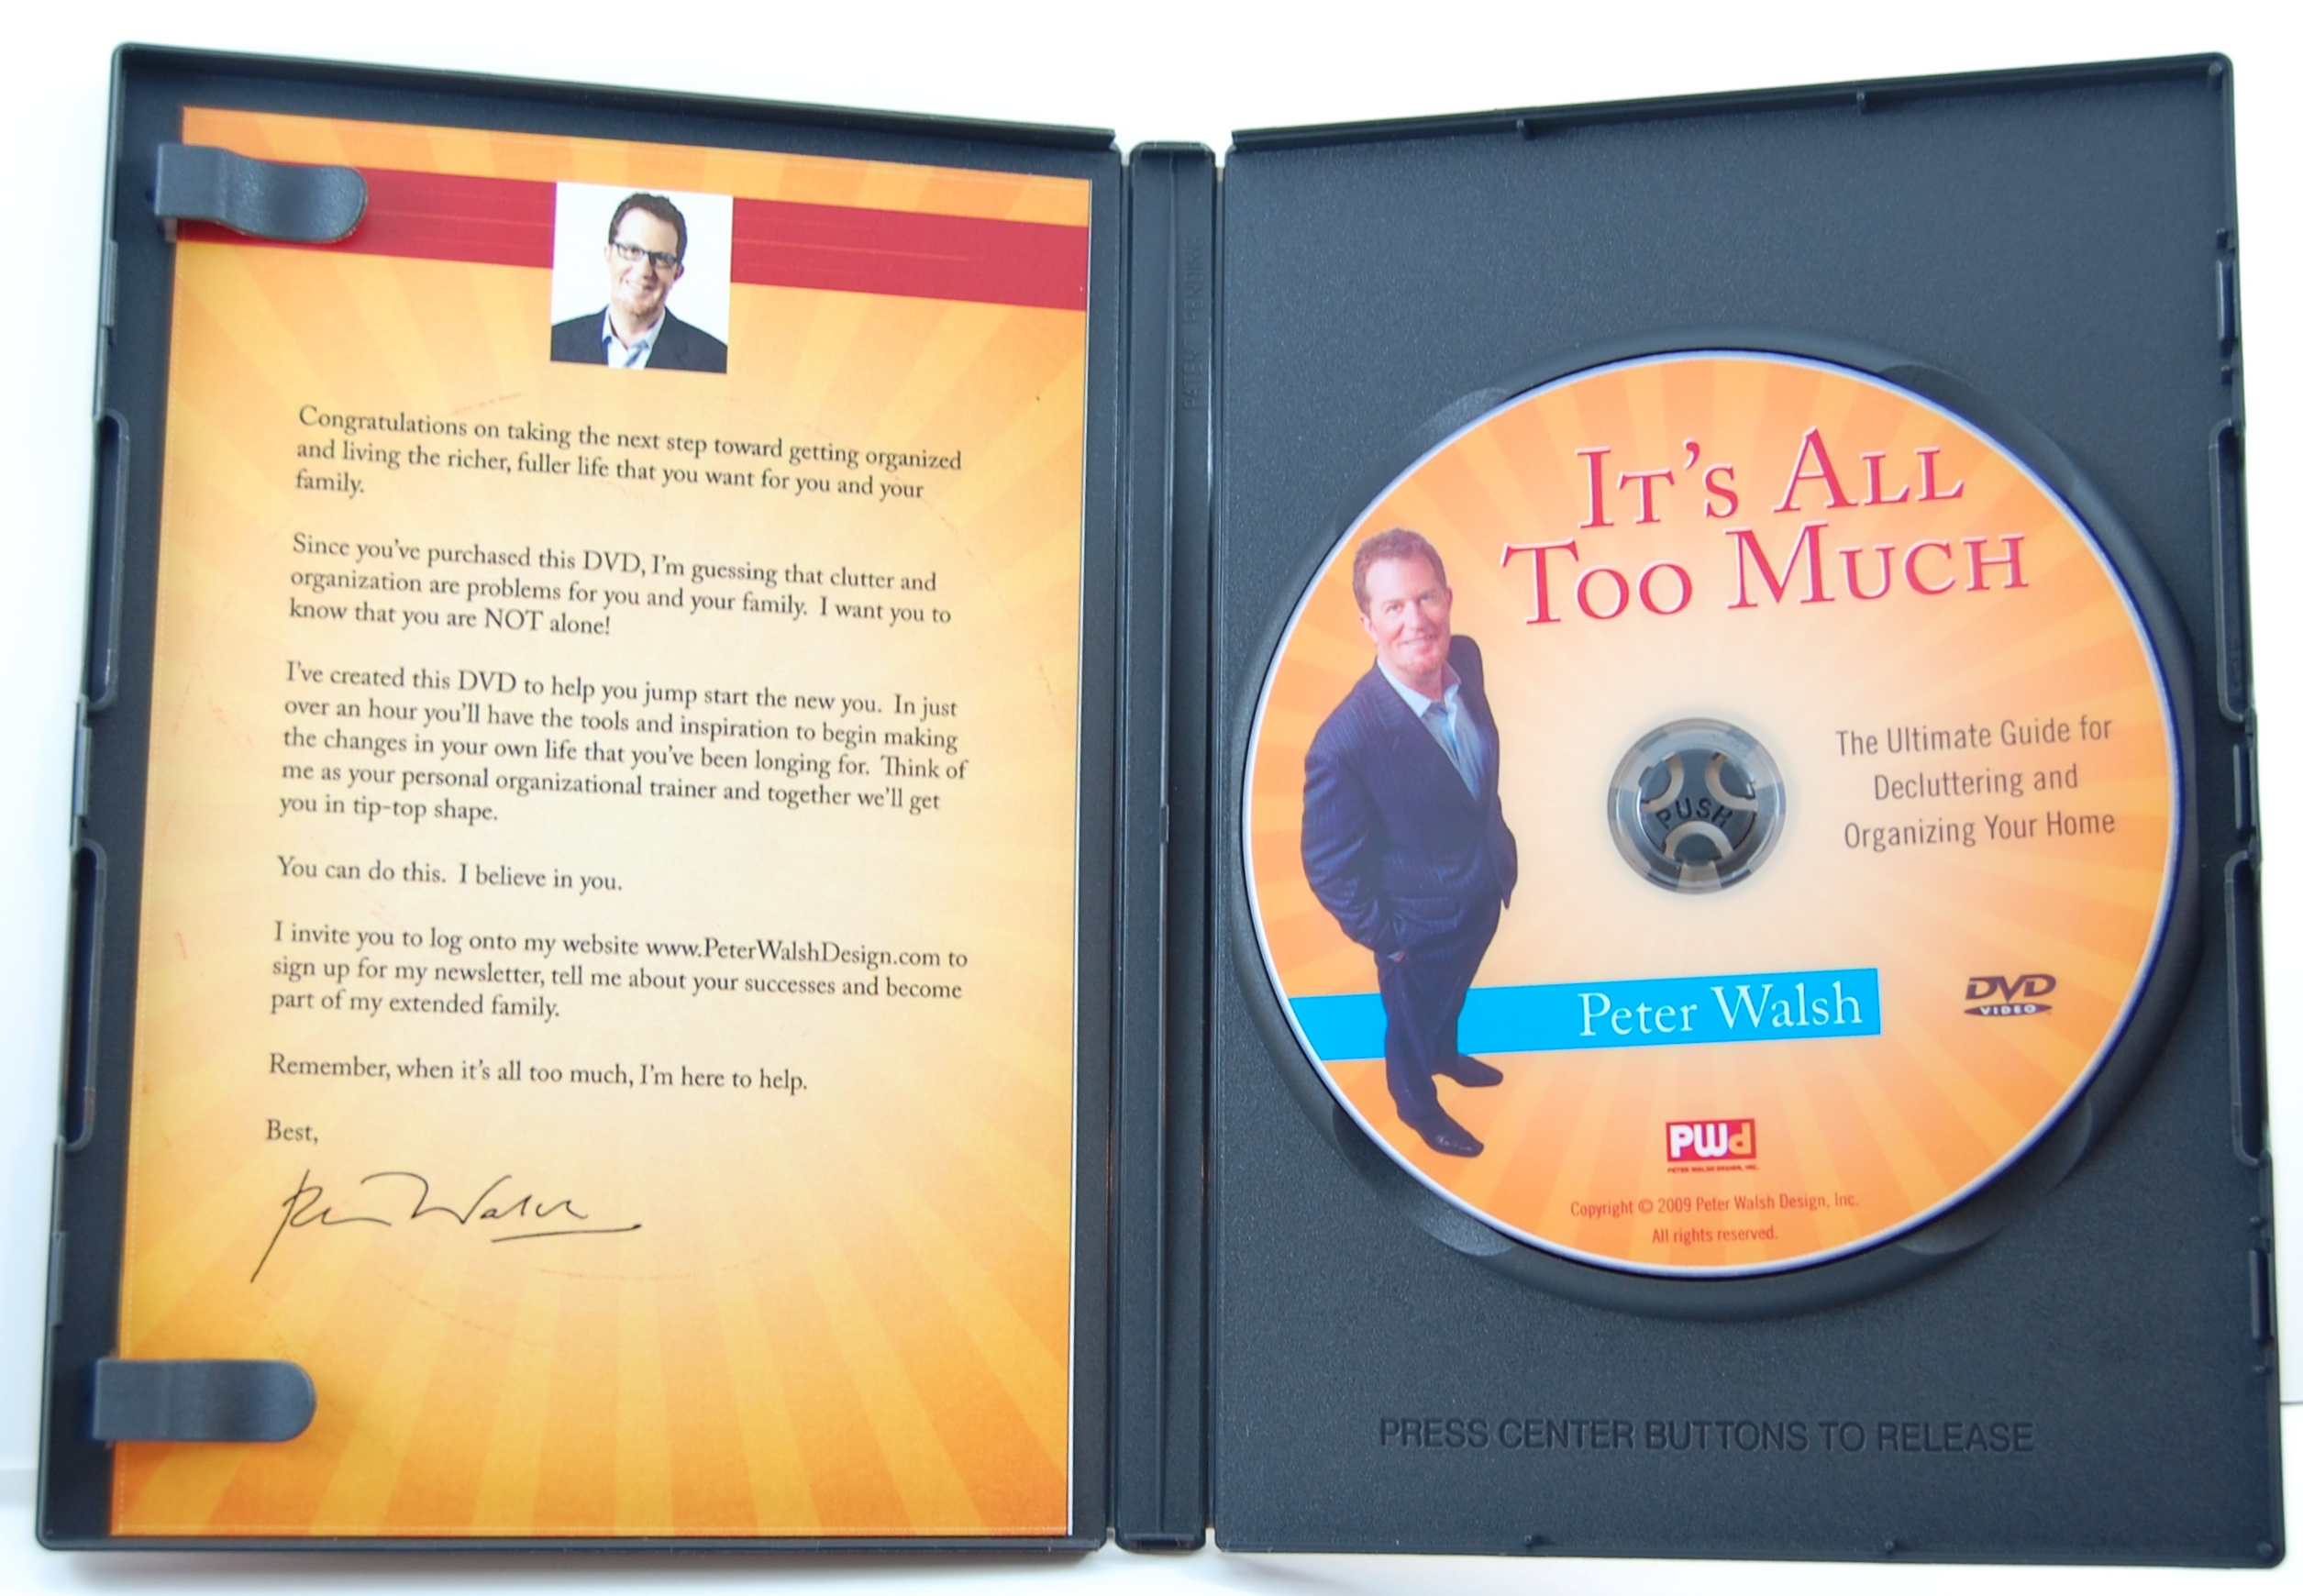 inside DVD case with optional printed insert card.